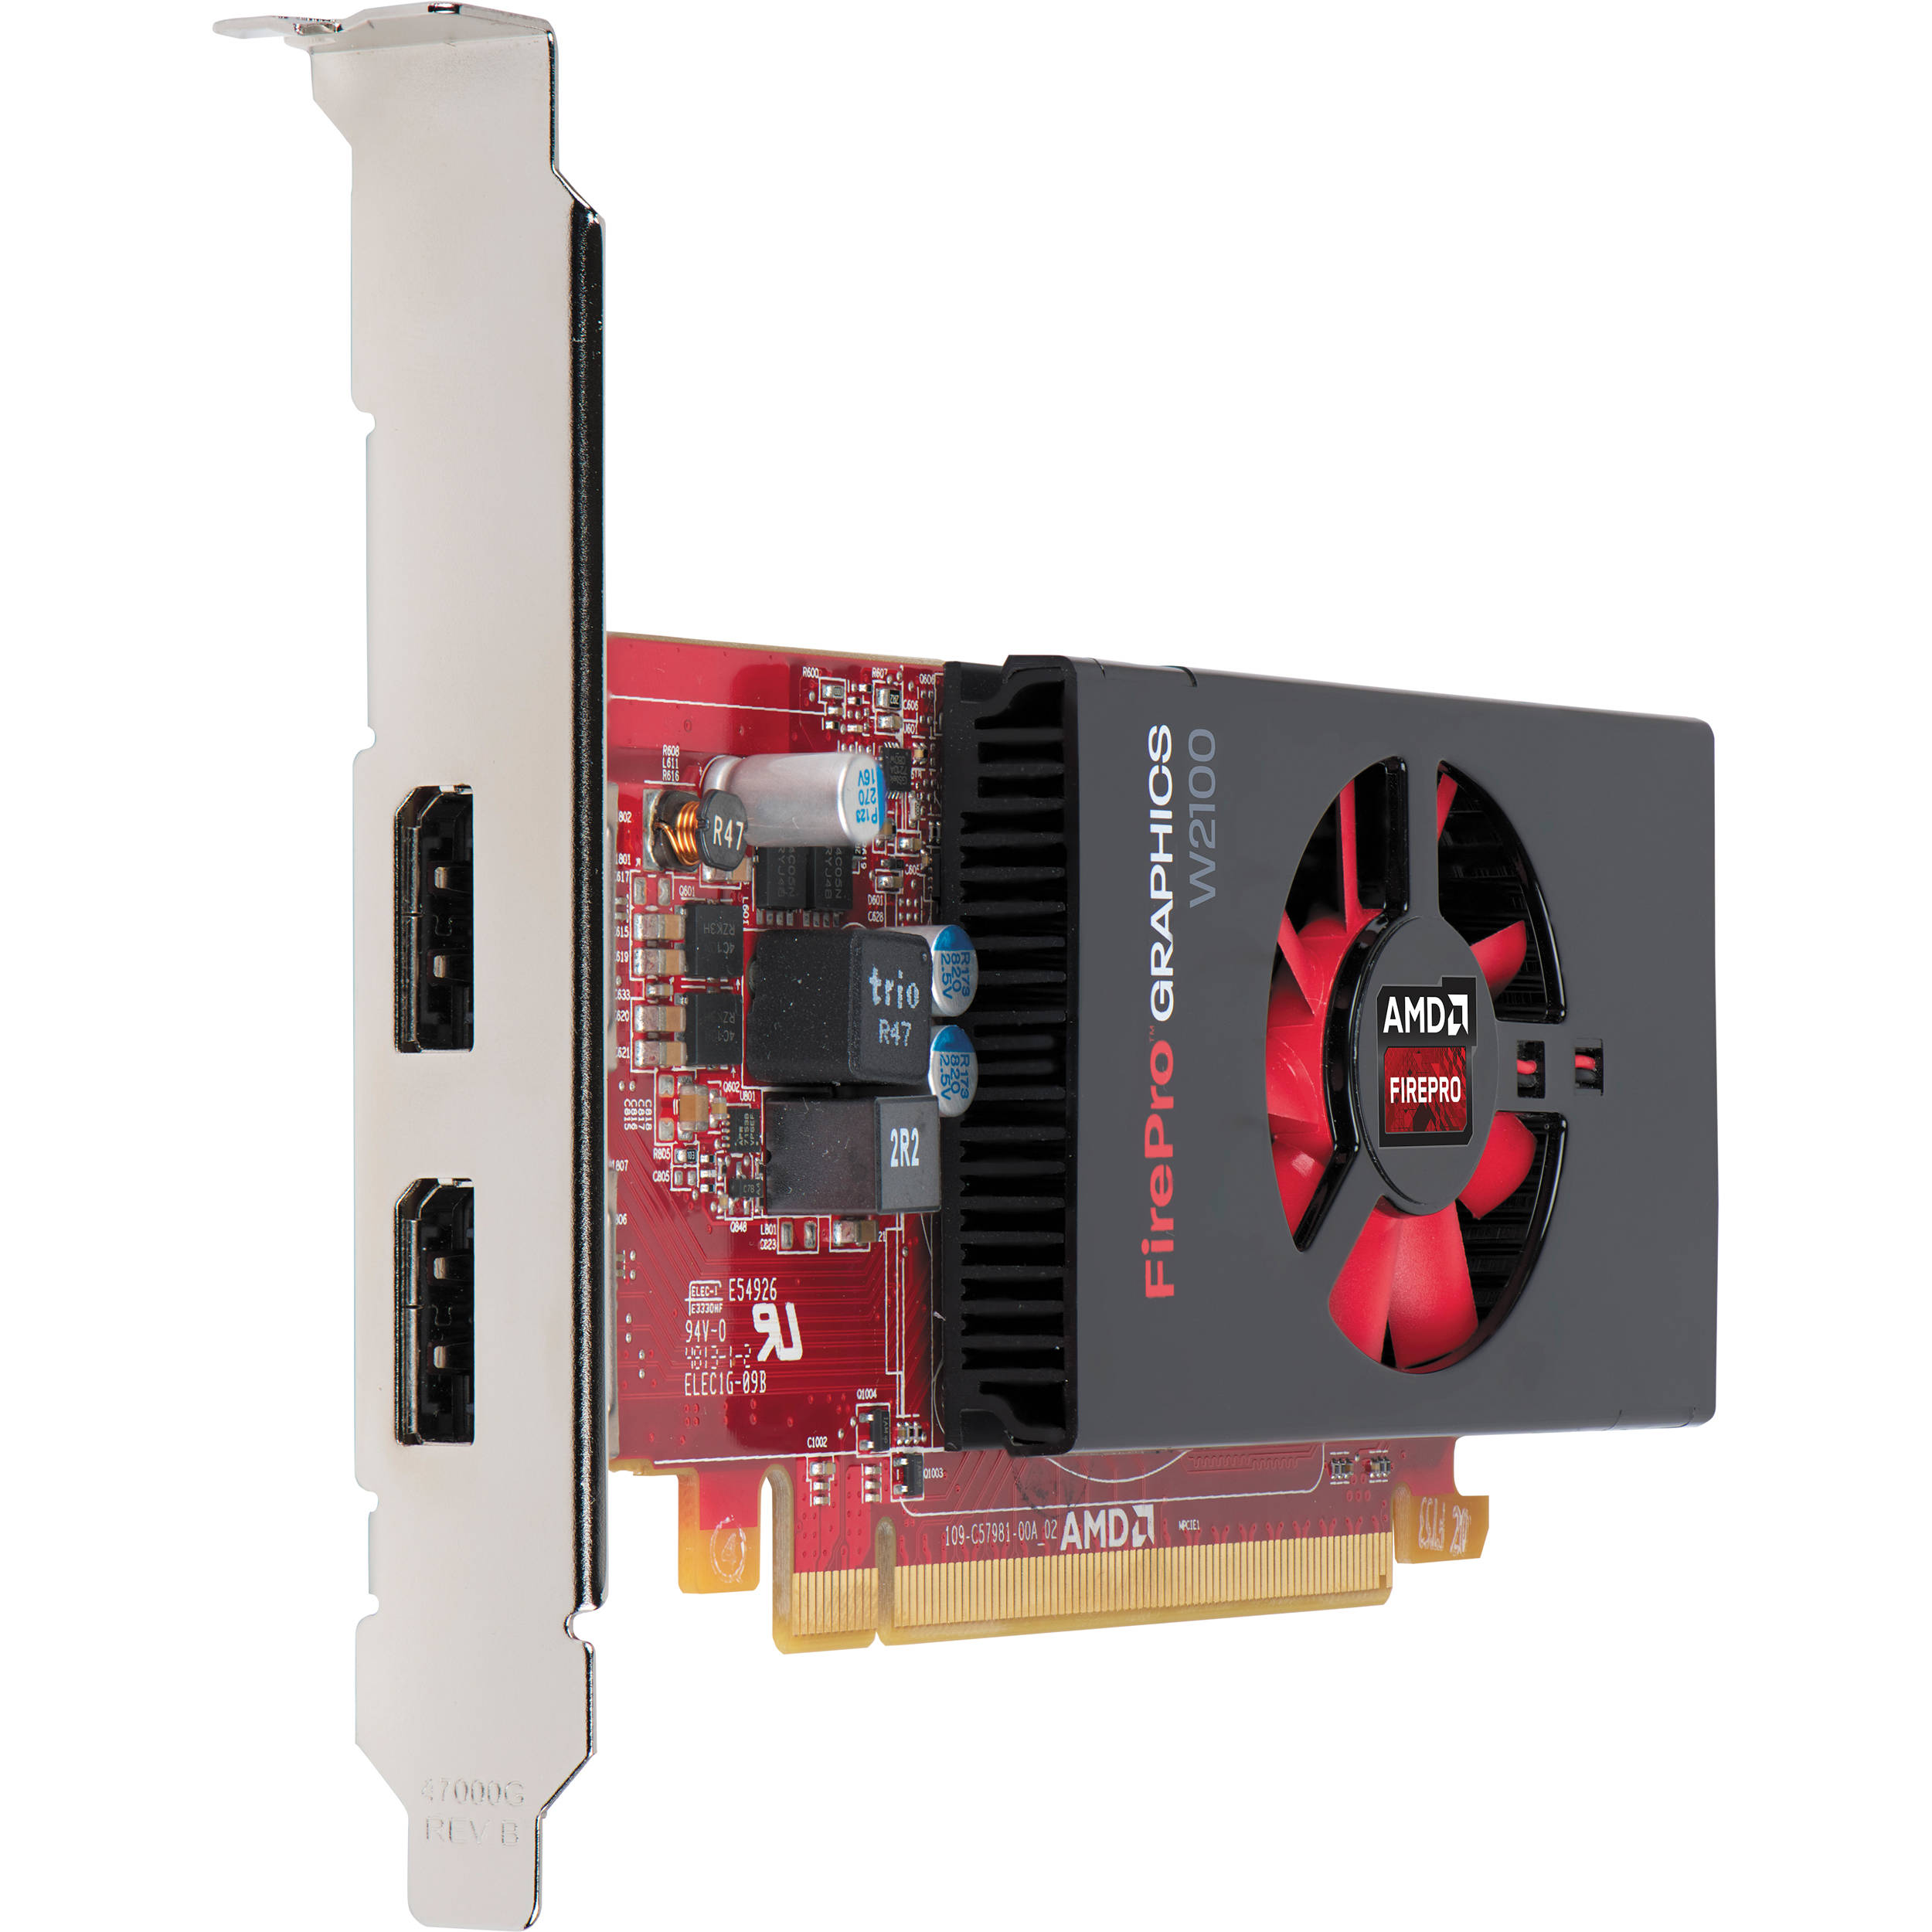 AMD FirePro W2100 2GB Graphics Card (Used)